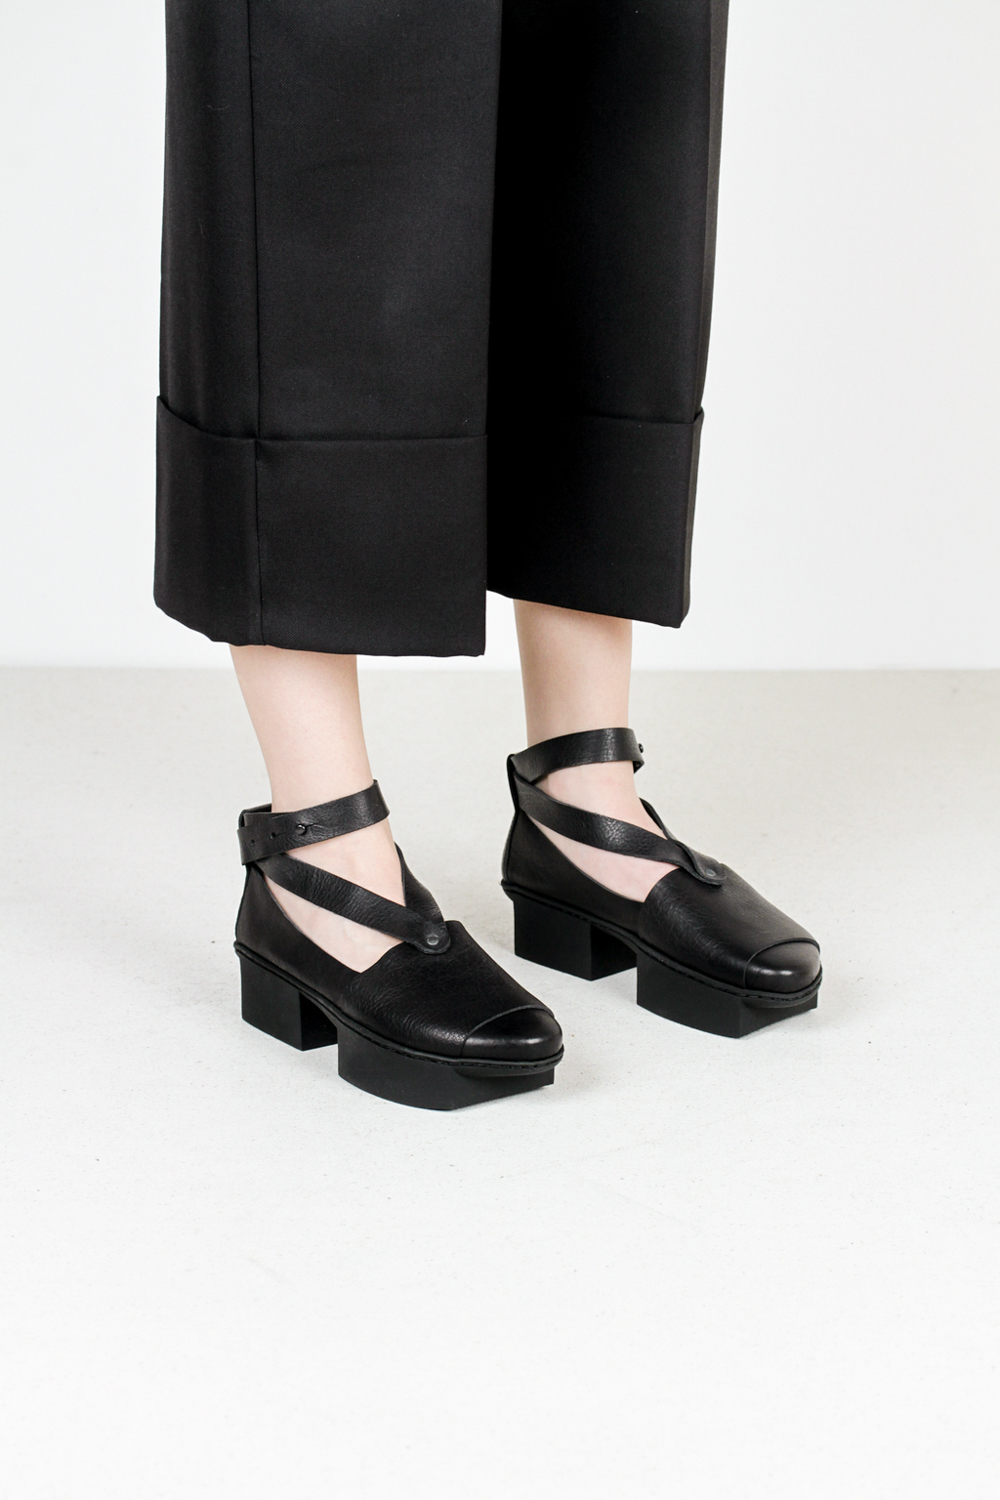 Trippen check f waw blk leather shoes